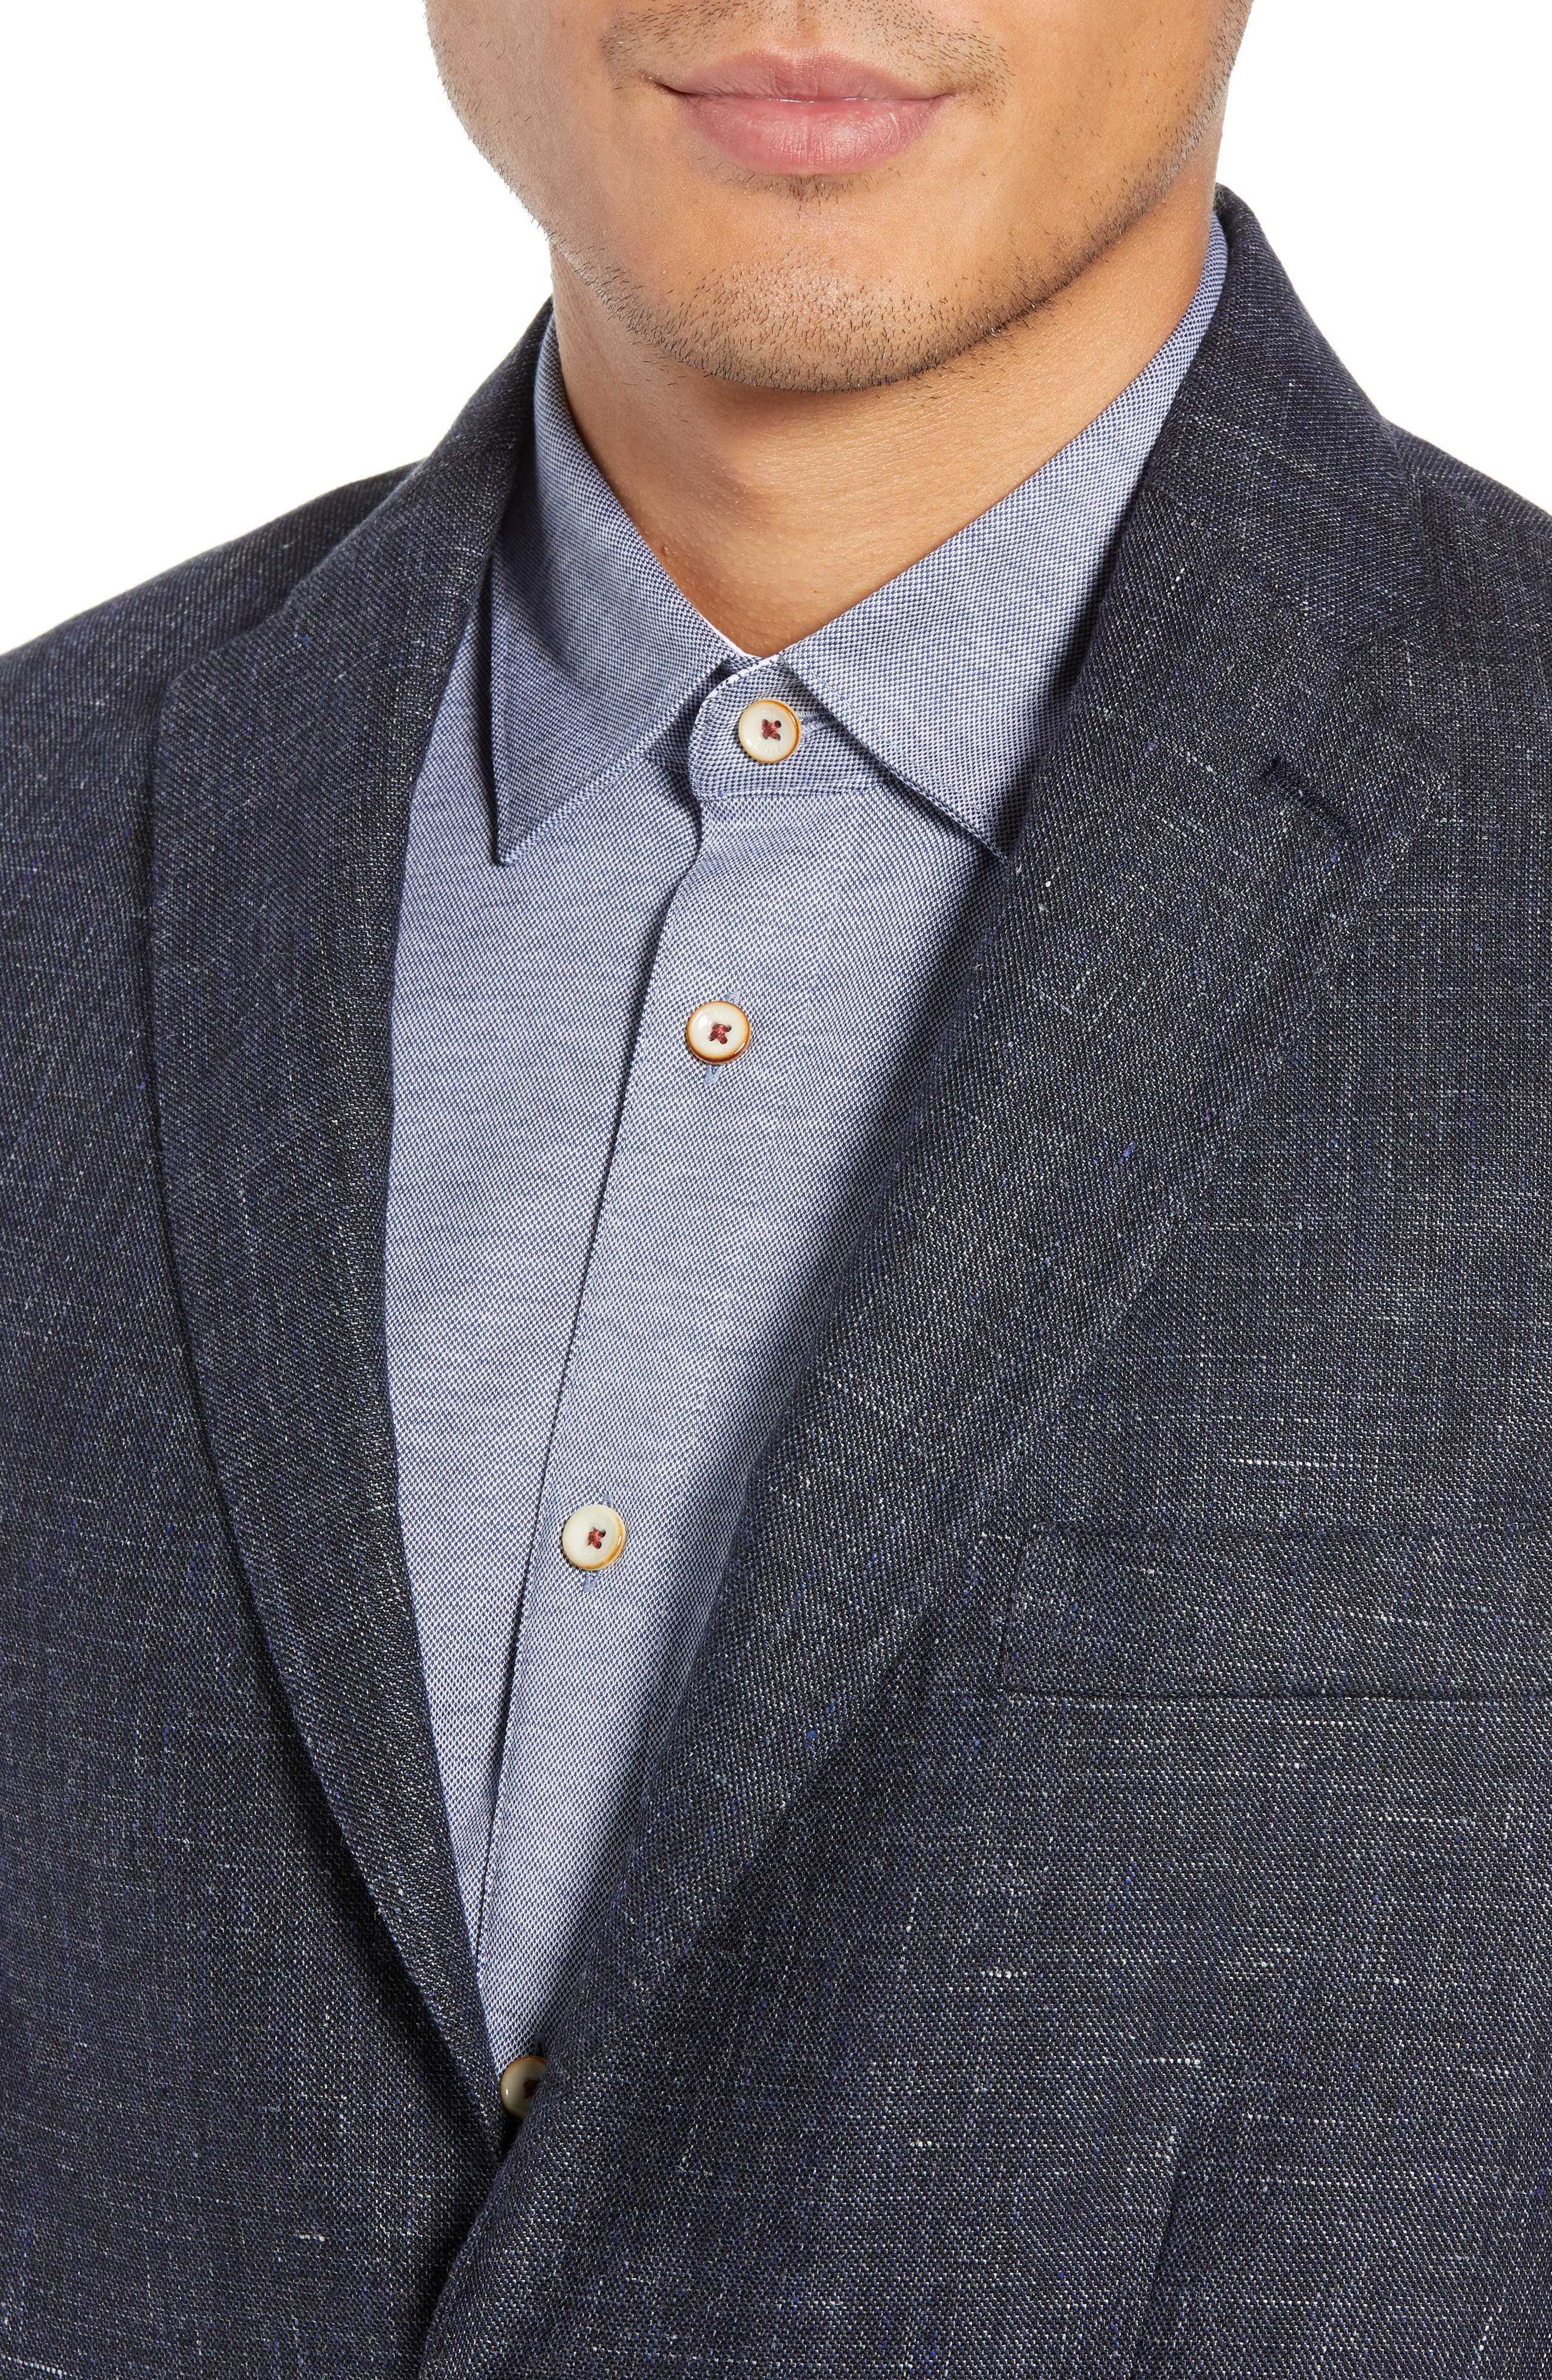 Slim Fit Unconstructed Wool & Linen Blazer,                             Alternate thumbnail 4, color,                             410